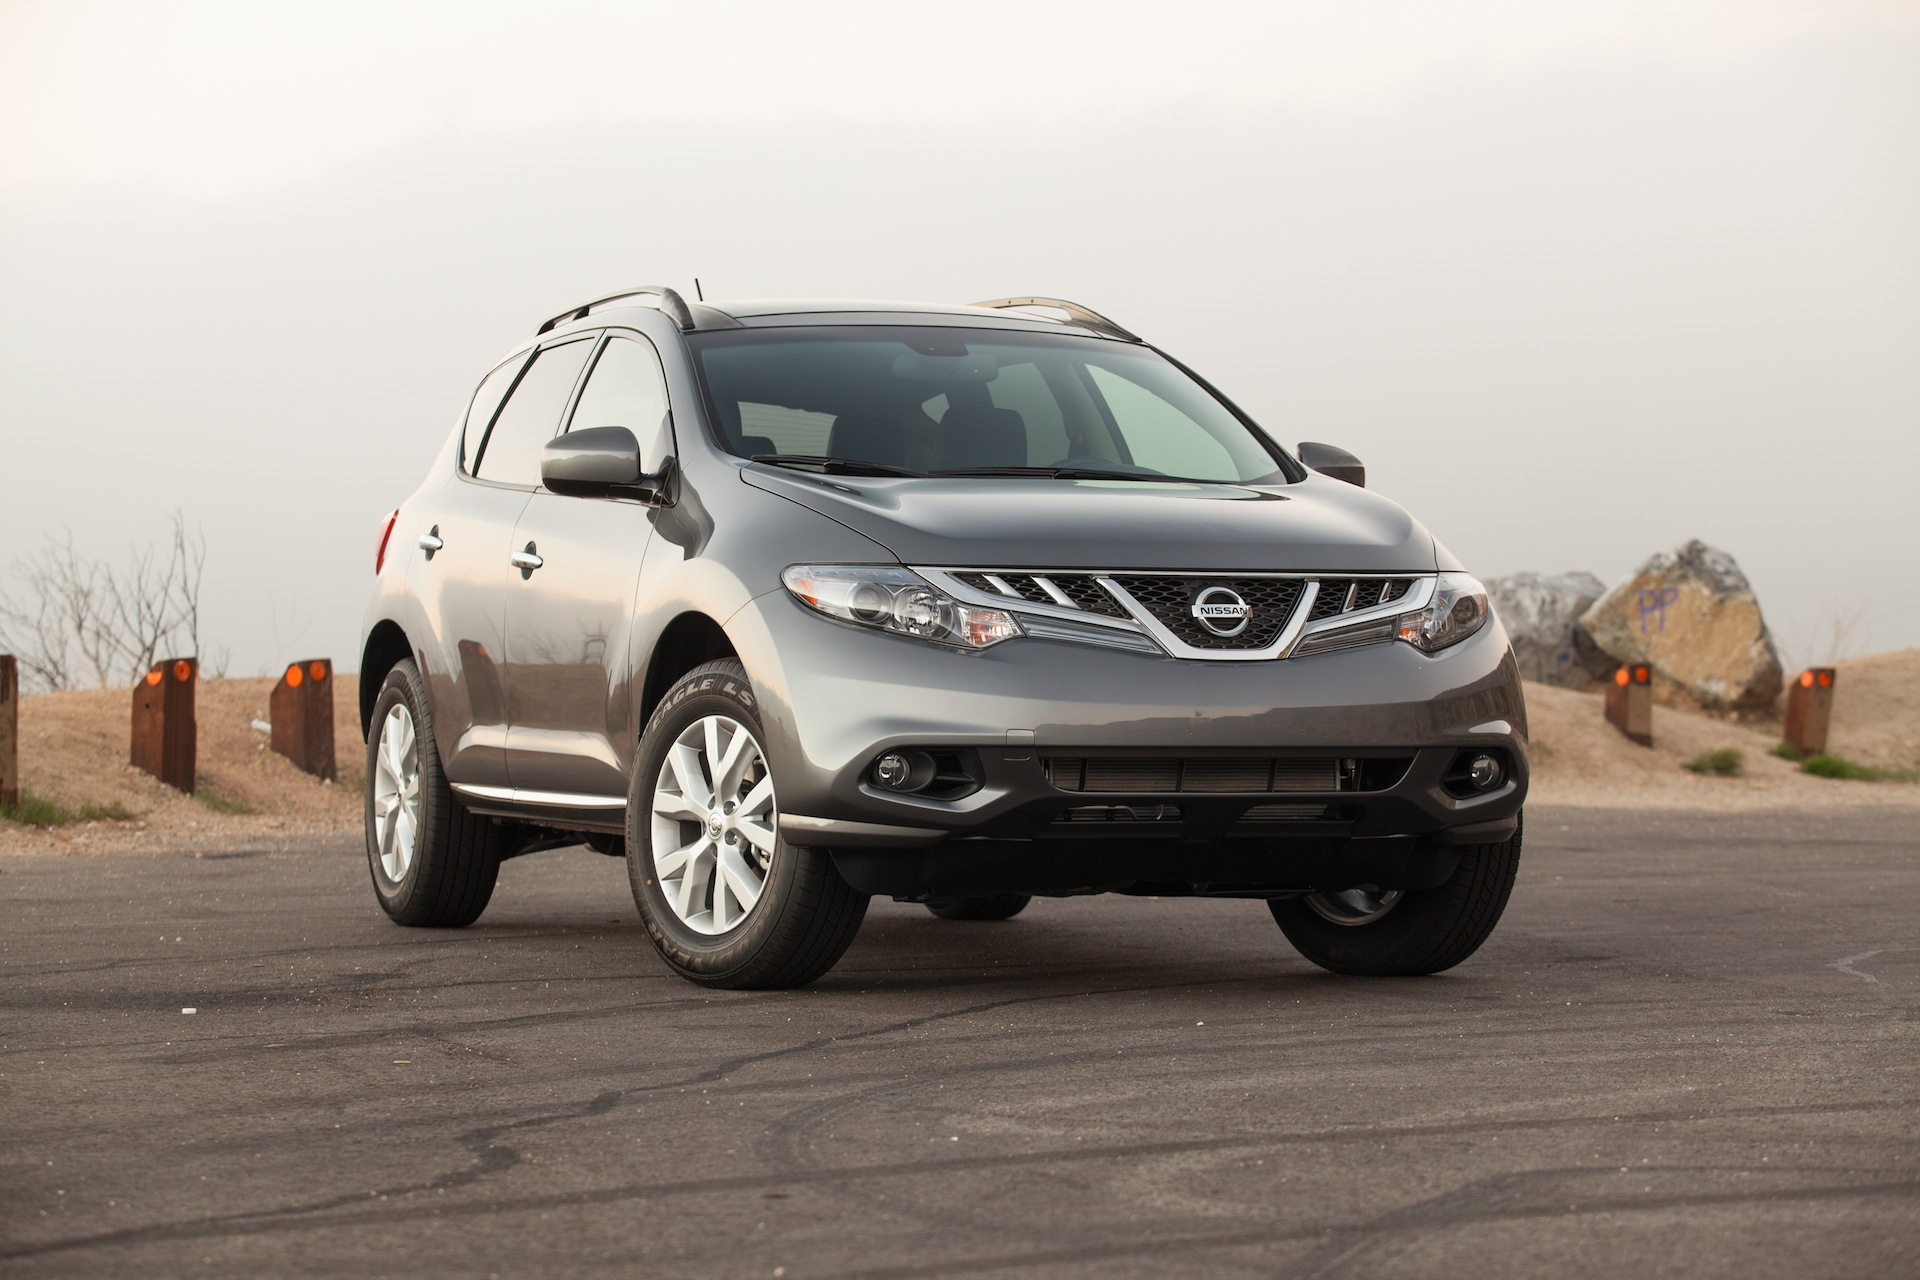 2014 Nissan Murano Review, Ratings, Specs, Prices, and ...